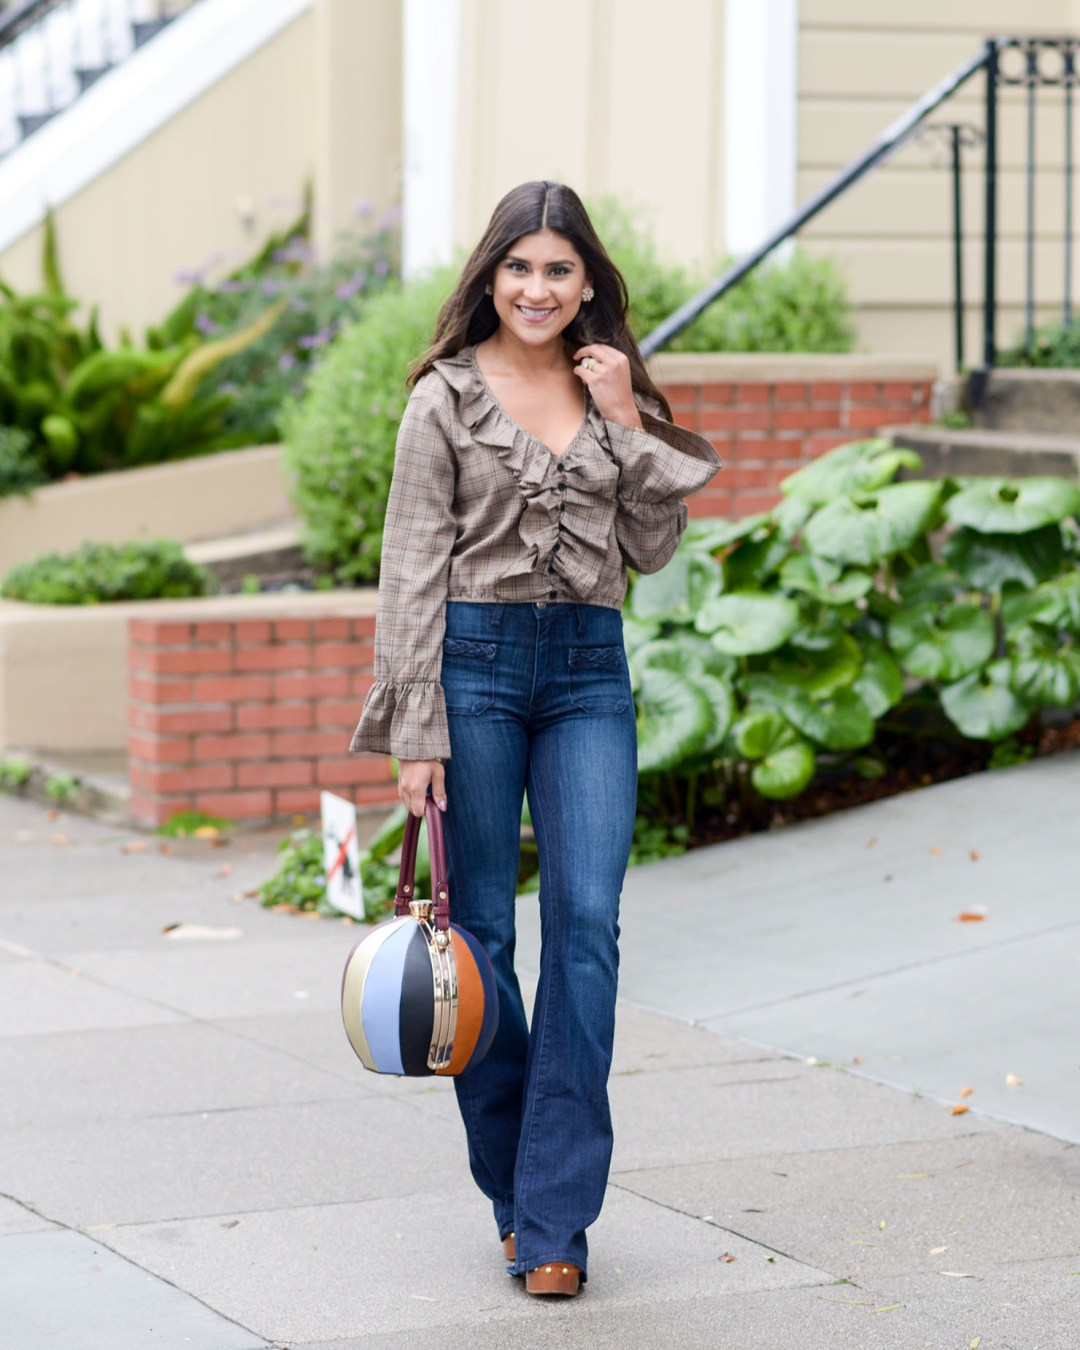 Lifestyle blogger Kelsey Kaplan of Kelsey Kaplan Fashion wearing plaid crop top and bell bottom jeans